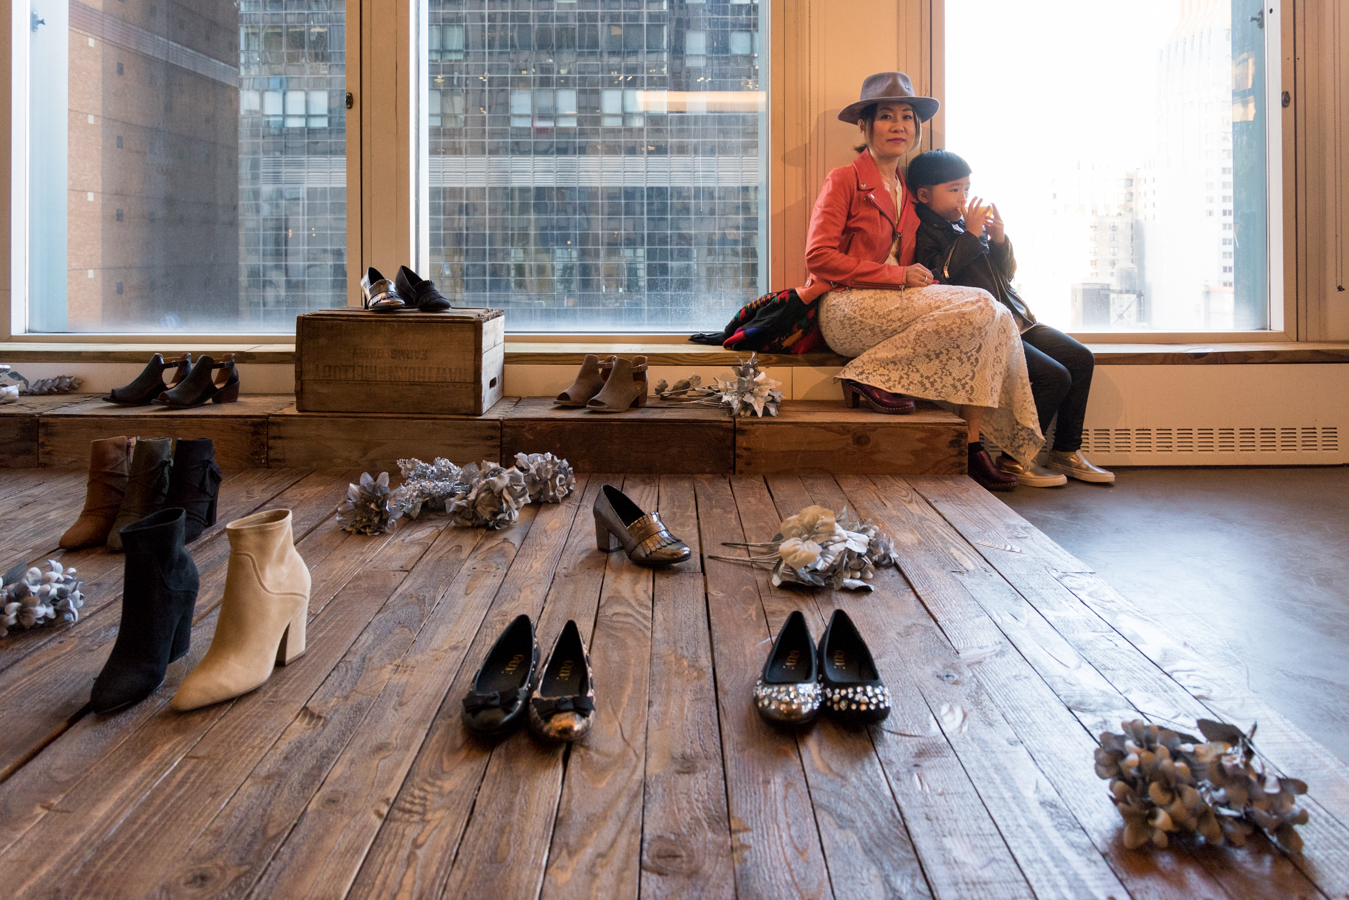 Buy A Pair Of Shoes And Support The Community  私がファッションのアイテムを購入する際の決め手 1